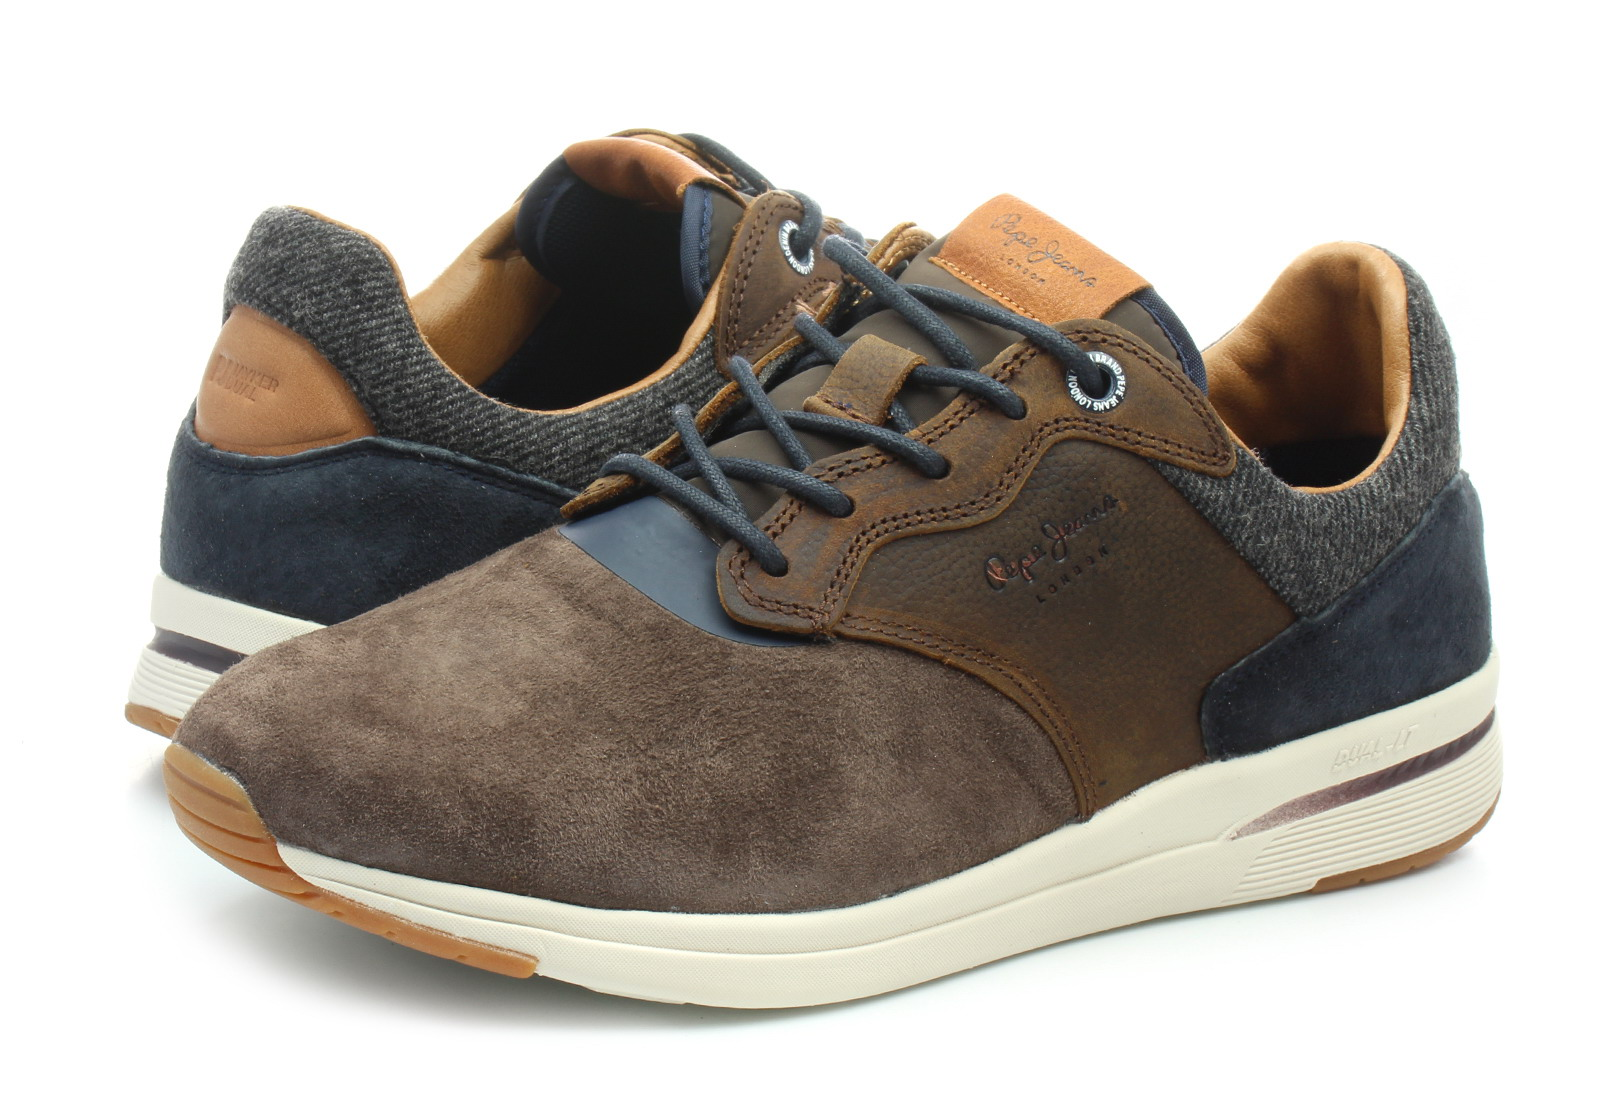 3ad2410f28c Pepe Jeans Shoes - Jayker - PMS30481884 - Online shop for sneakers ...